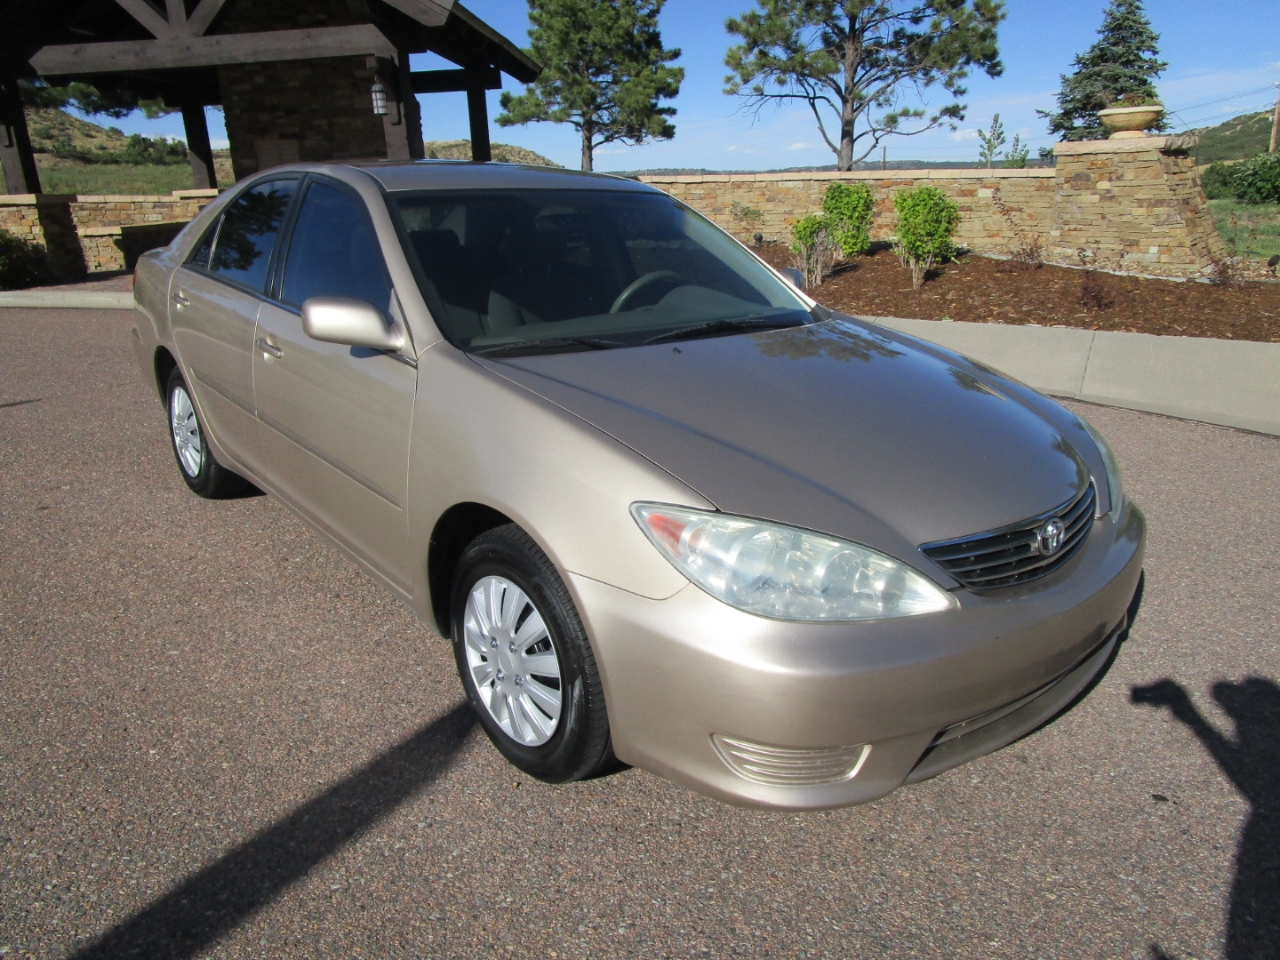 2005 Toyota Camry 4dr Sdn XLE Auto (Natl)